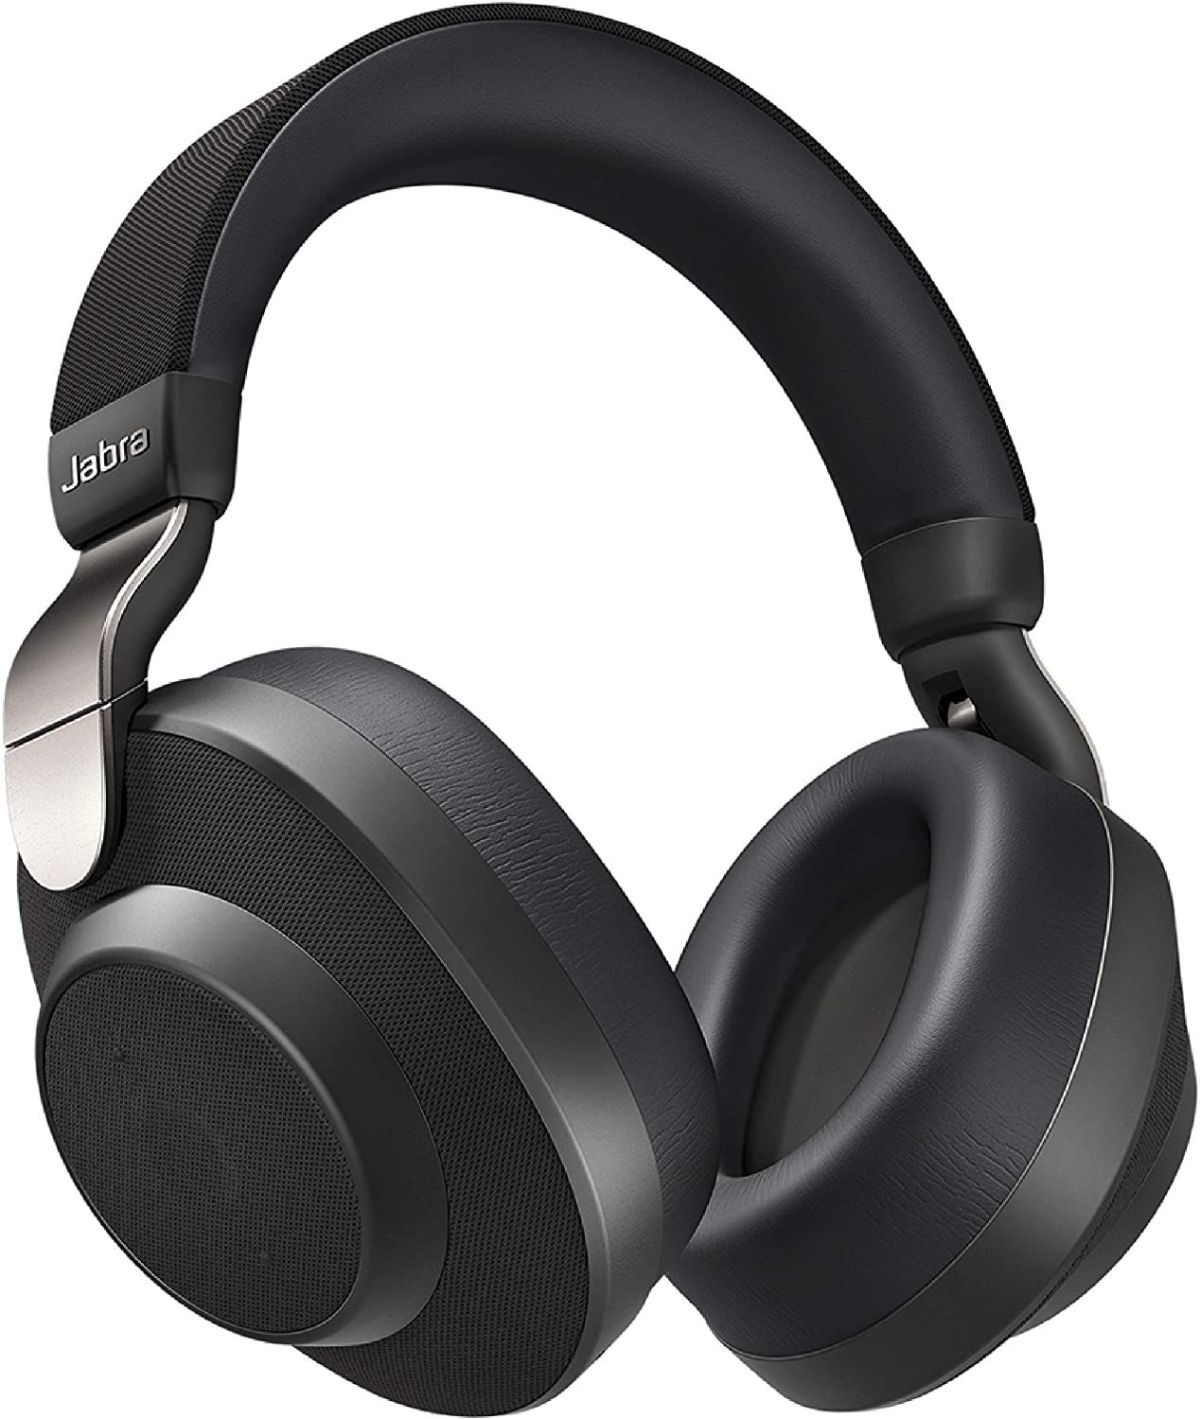 Block out the world with these Jabra Elite noise-cancelling headphones